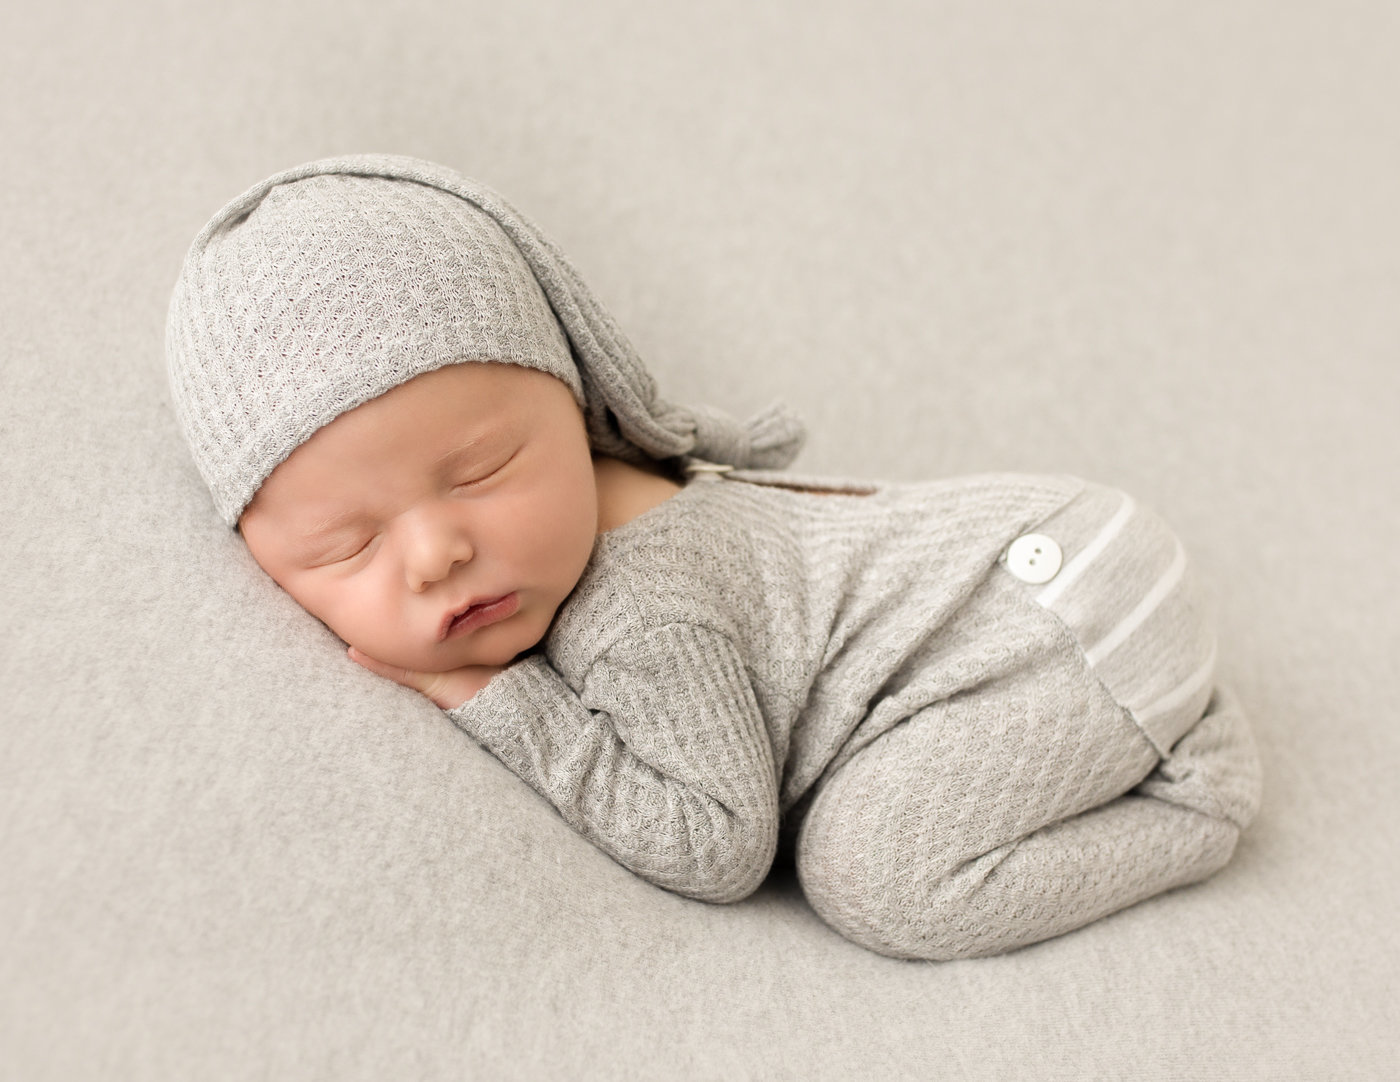 Sleepy newborn boy posed in our Rochester, Ny studio.